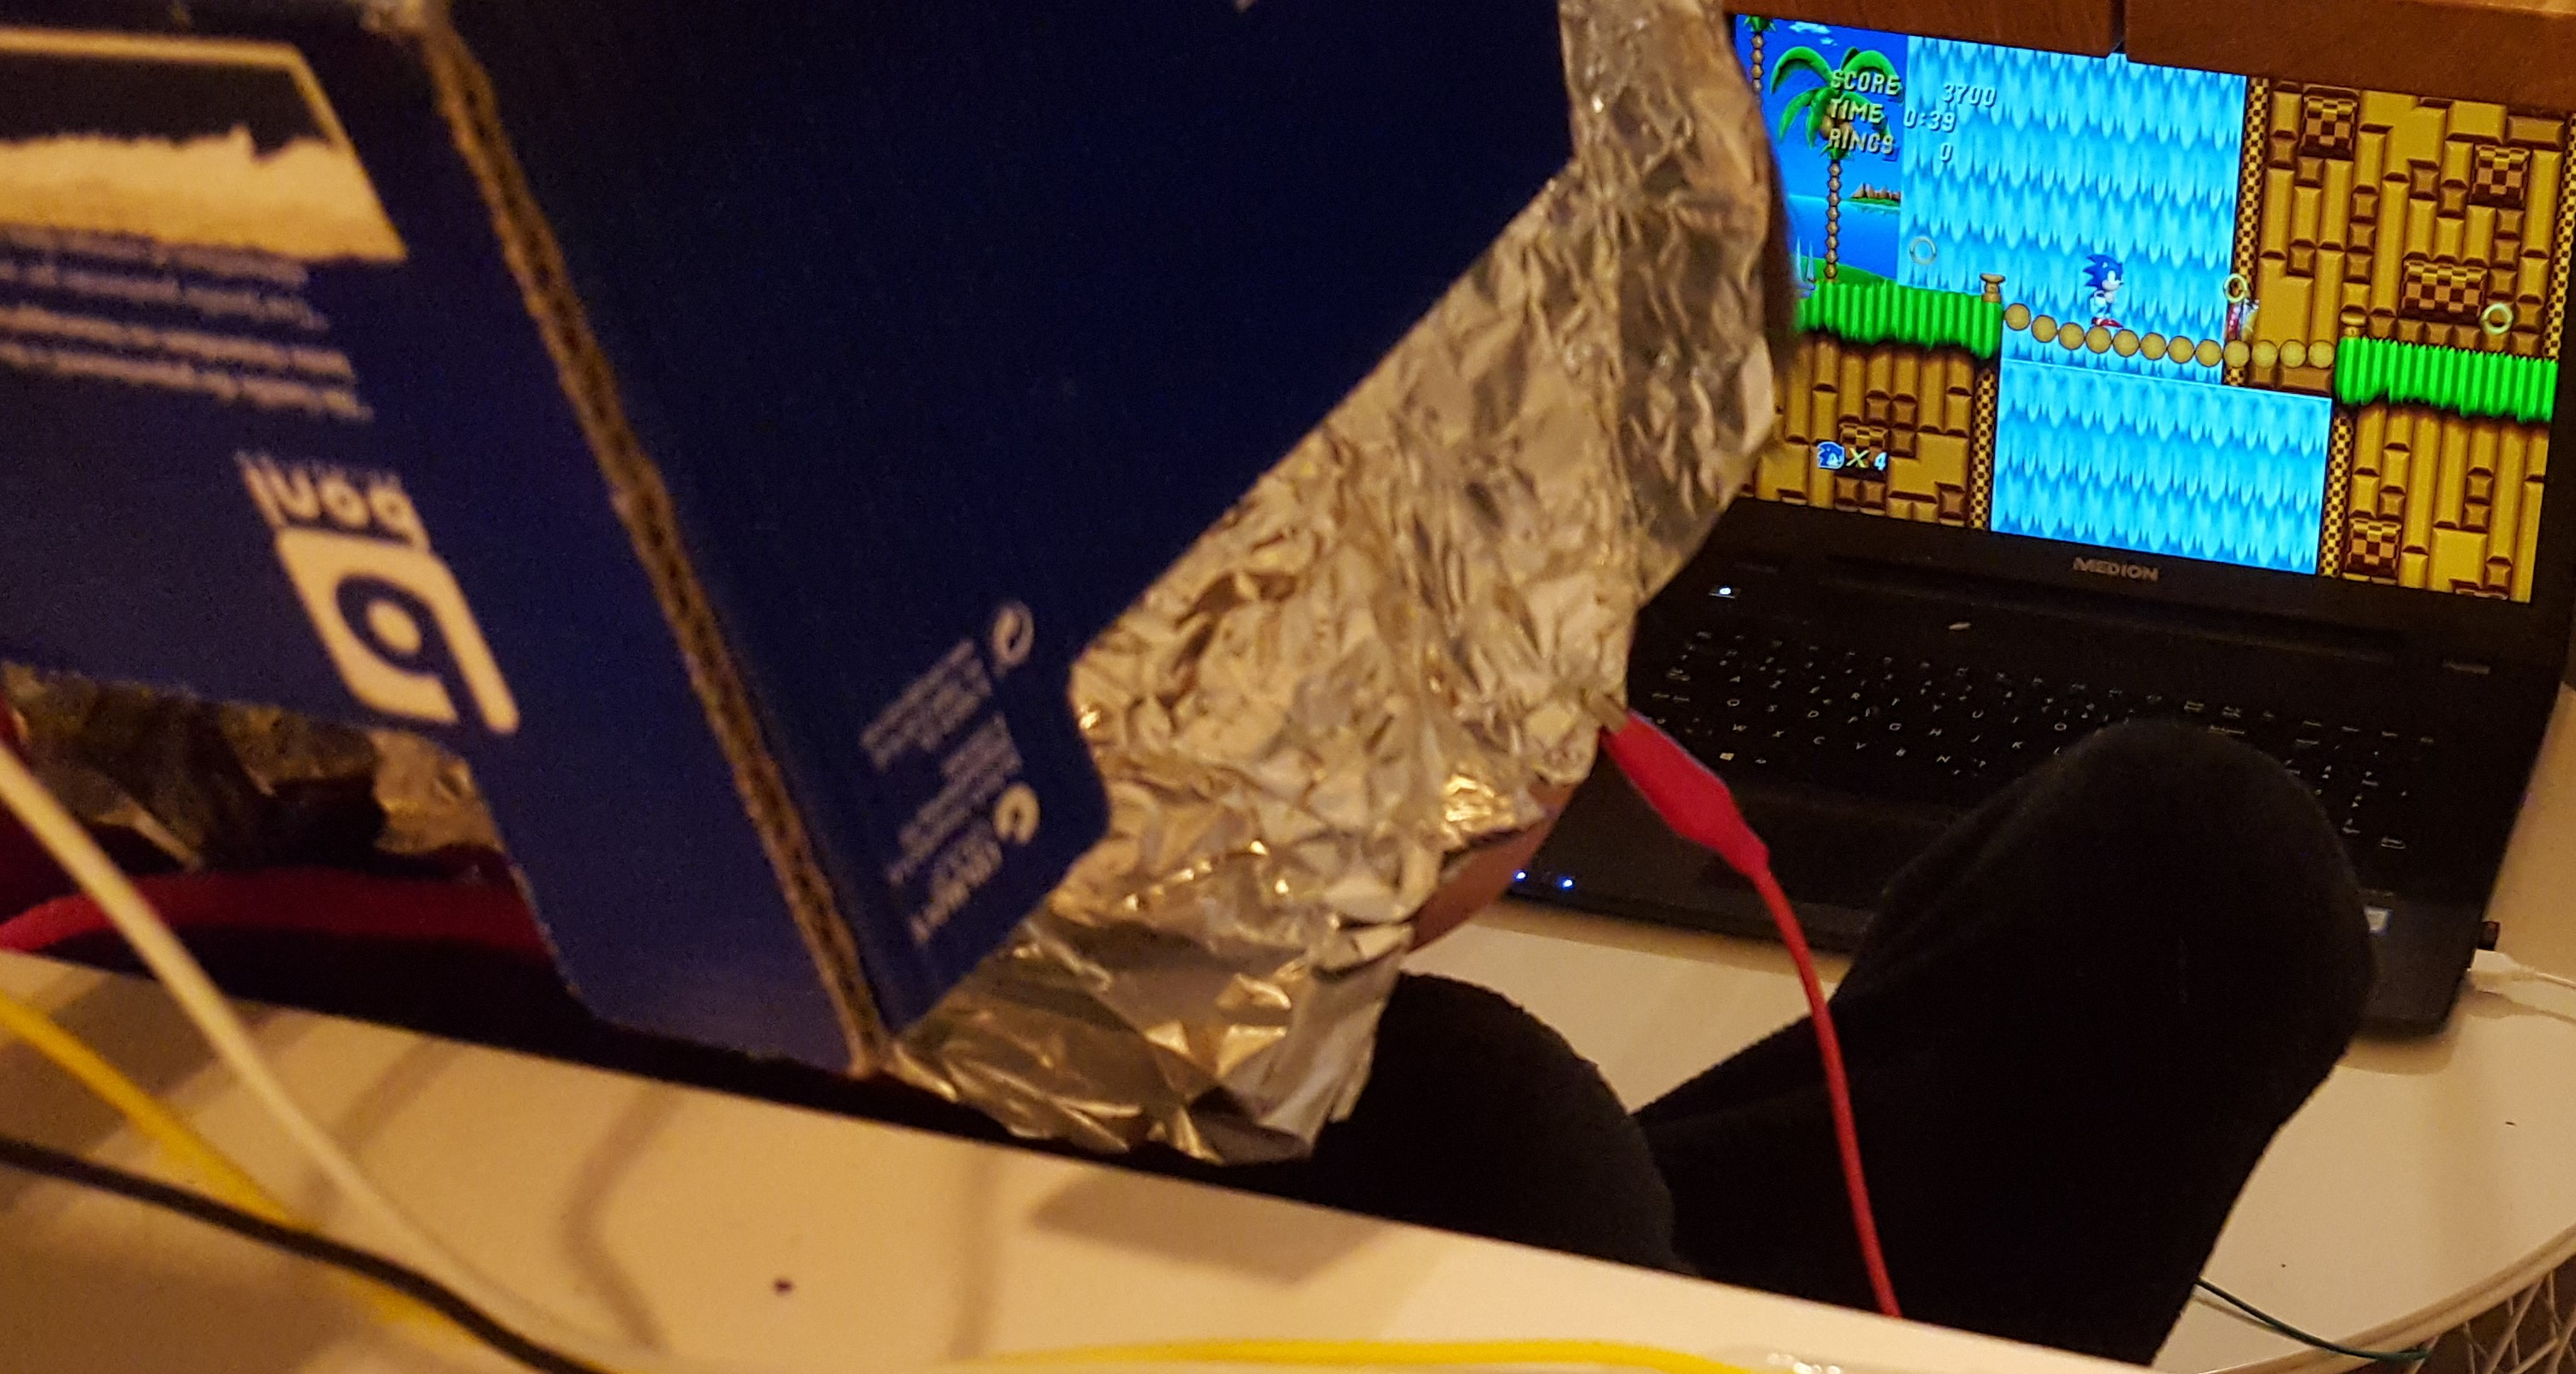 MakeyMakey aluminium foil head controls